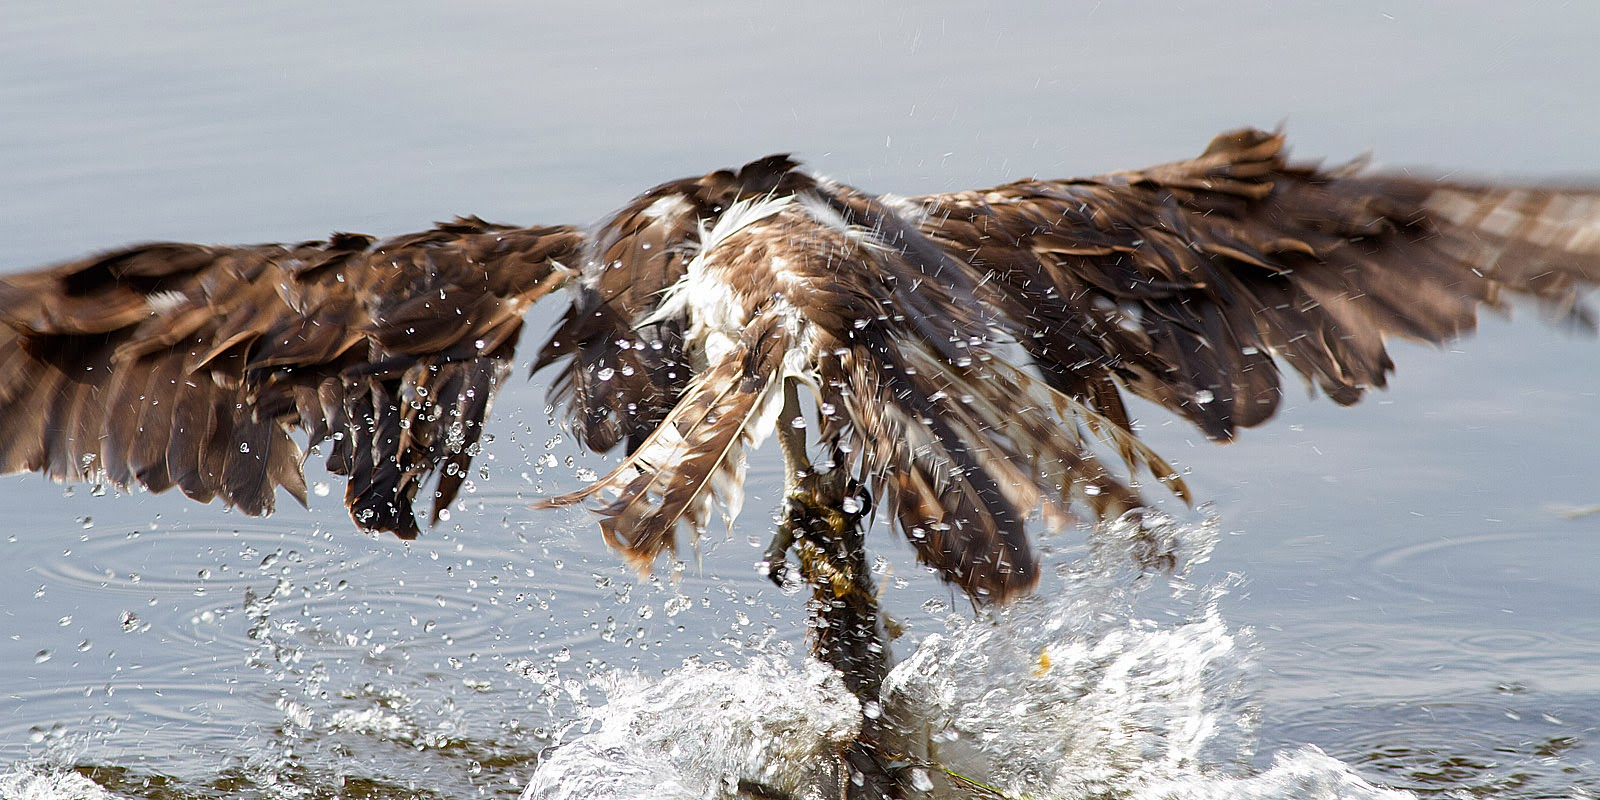 Ann brokelman photography osprey and the fish florida 2014 for Can fish see water